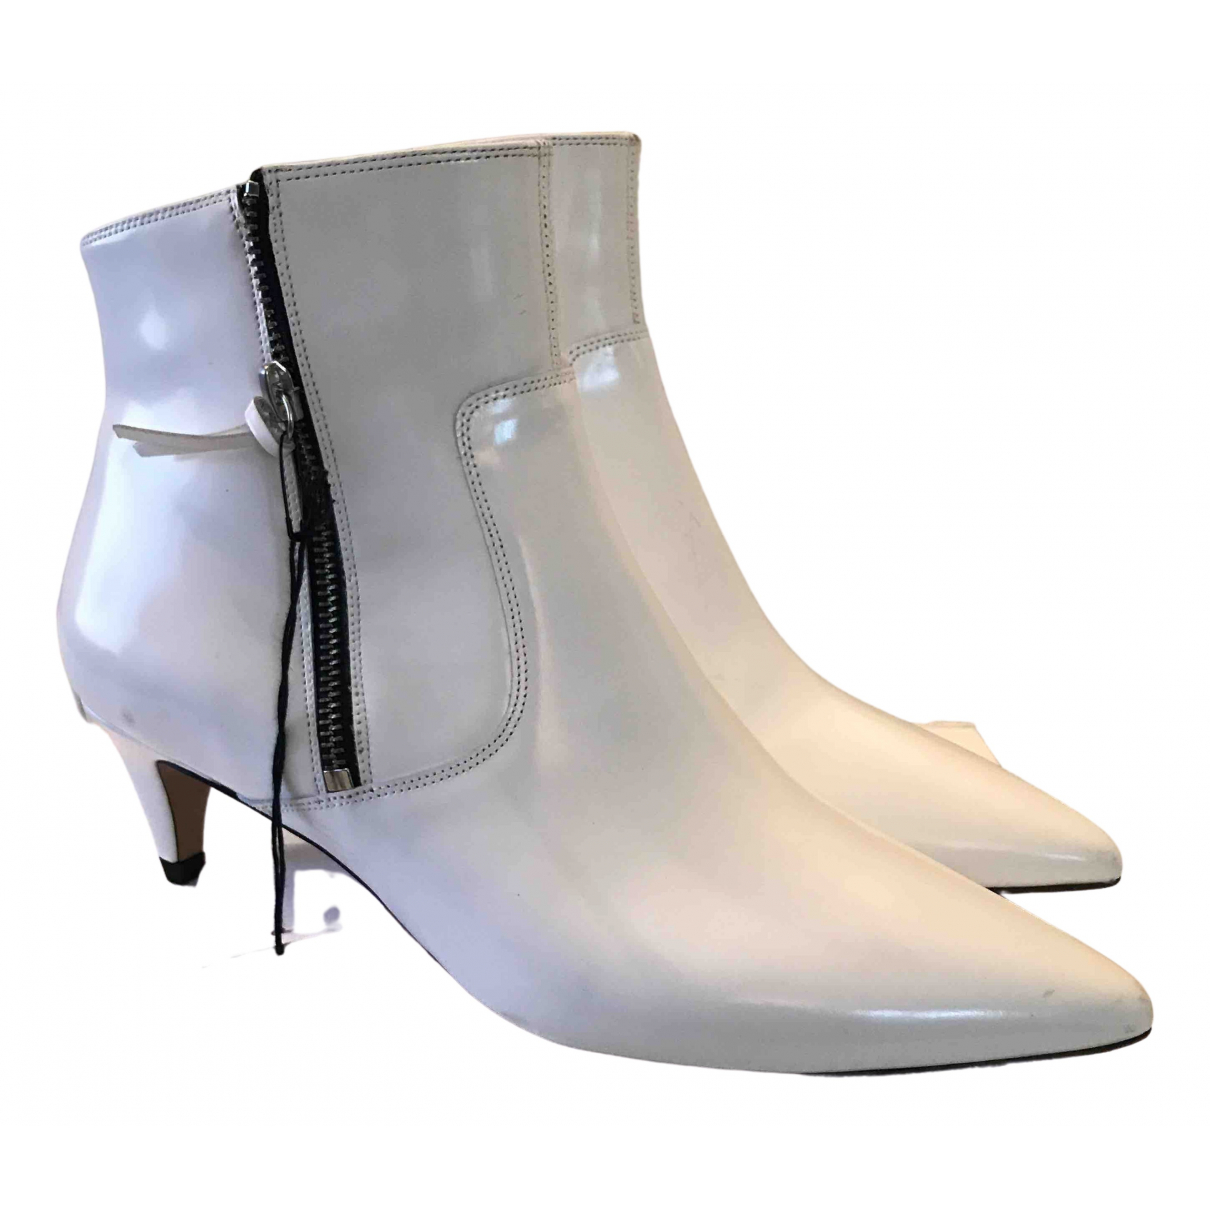 Isabel Marant \N White Patent leather Boots for Women 39 EU